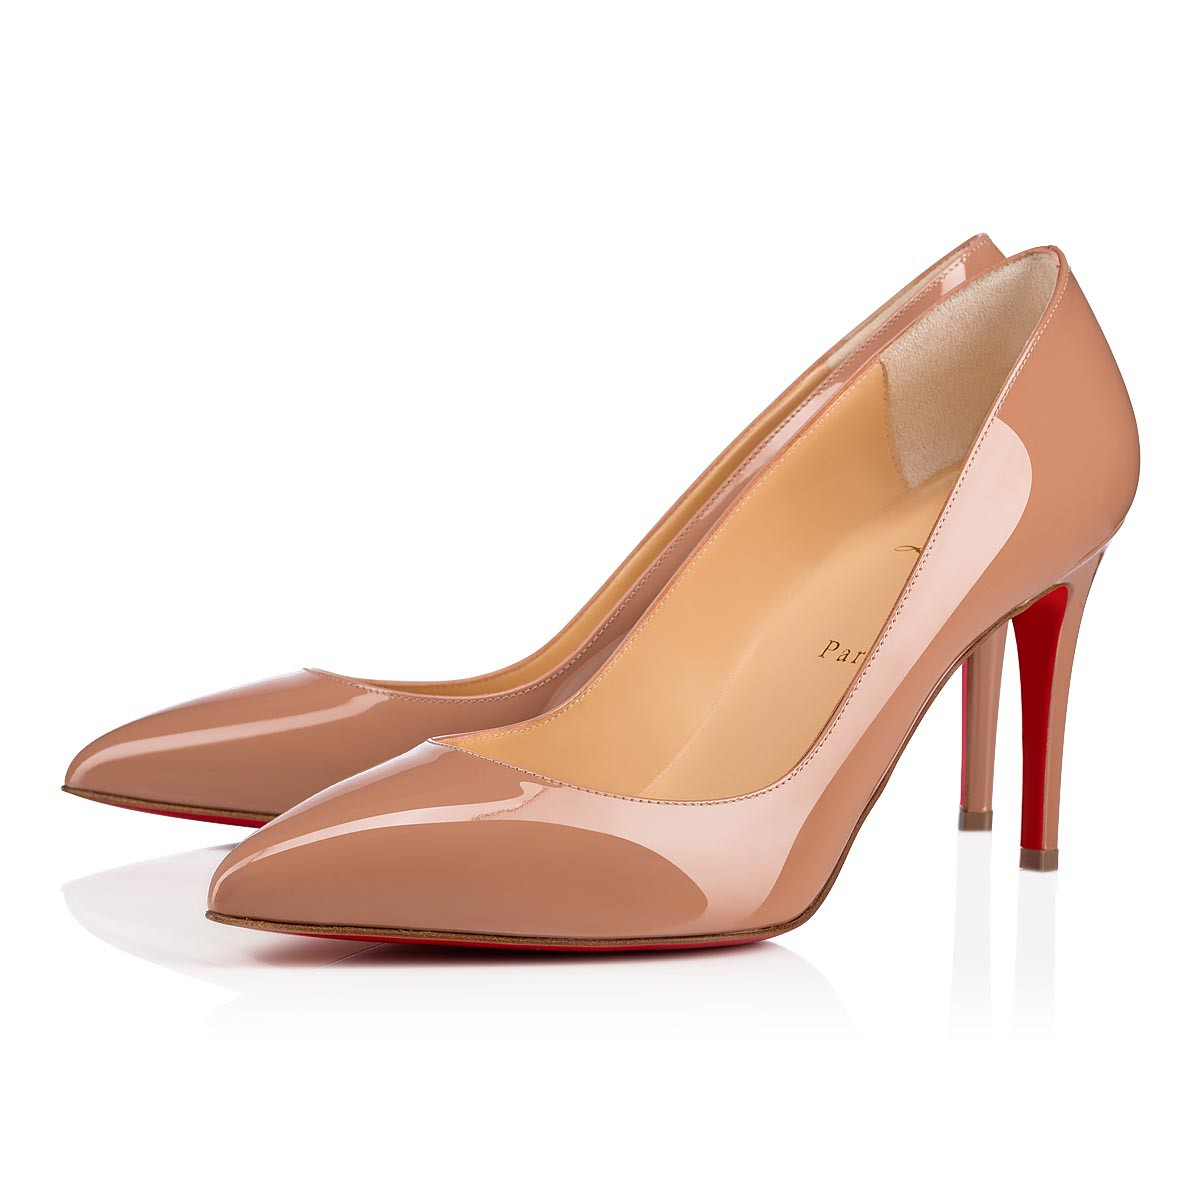 6be4e731642c Pigalle 85 Nude Patent Leather - Women Shoes - Christian Louboutin